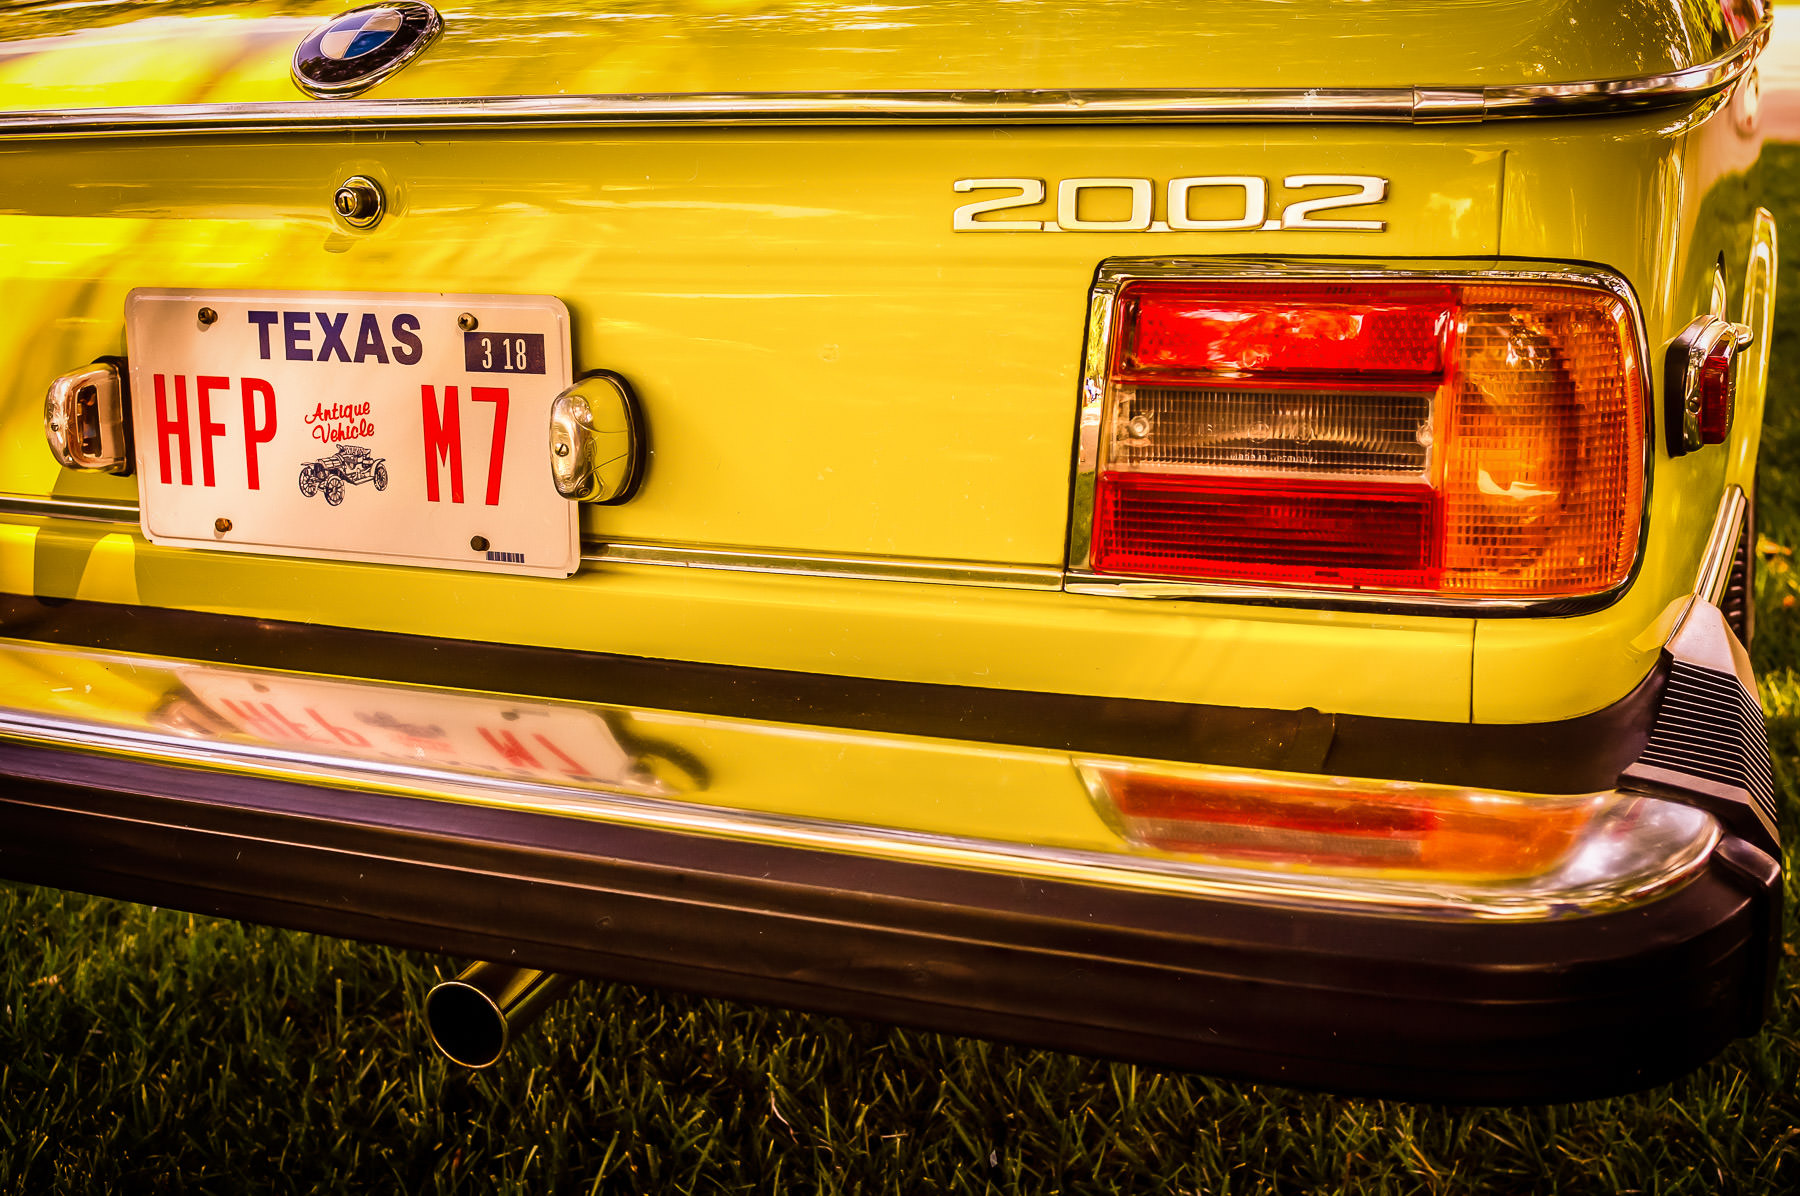 A BMW 2002 at the Autos in the Park event at Dallas' Cooper Aerobics Center.